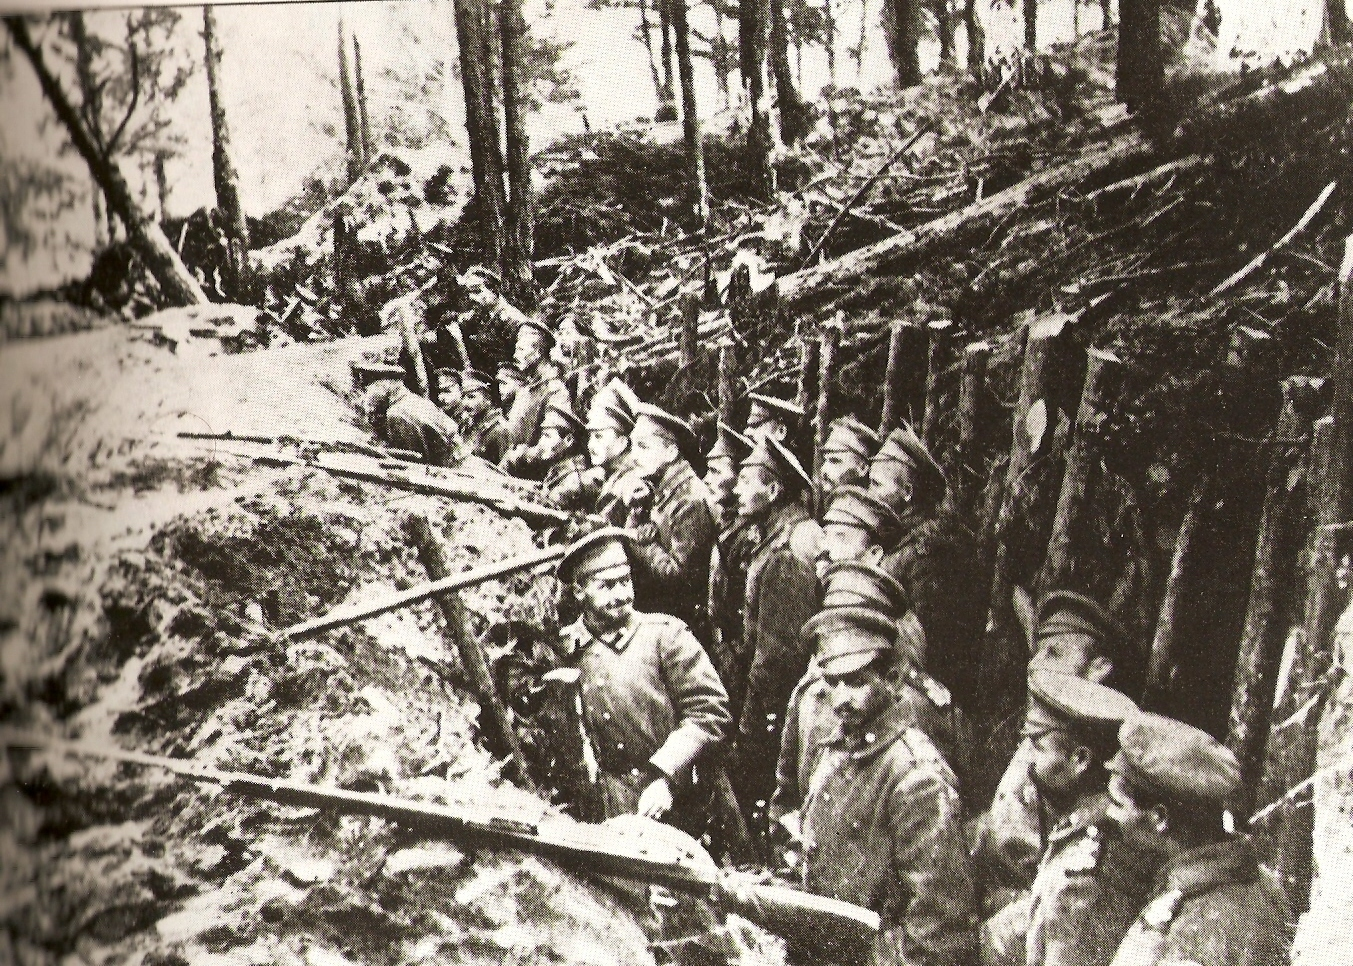 a Russian forest trench